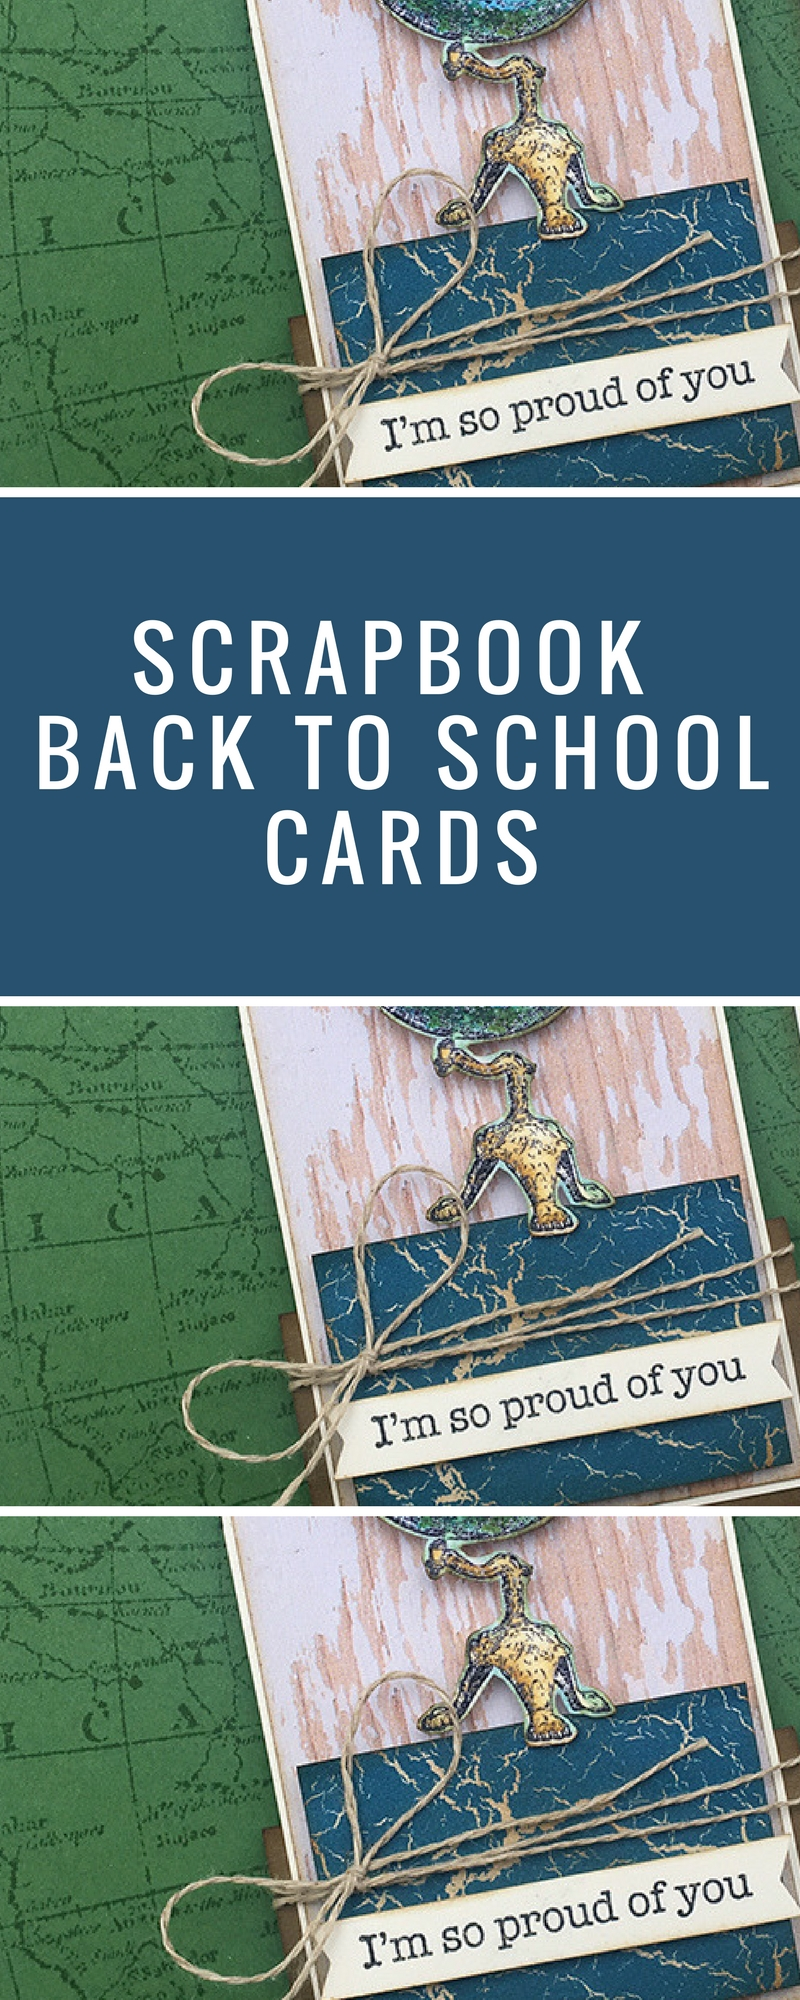 Cards | Card Making | Scrapbook Cards | Back To School | Featuring Stampin' Up! | Designed by Cathy Caines | Creative Scrapbooker Magazine